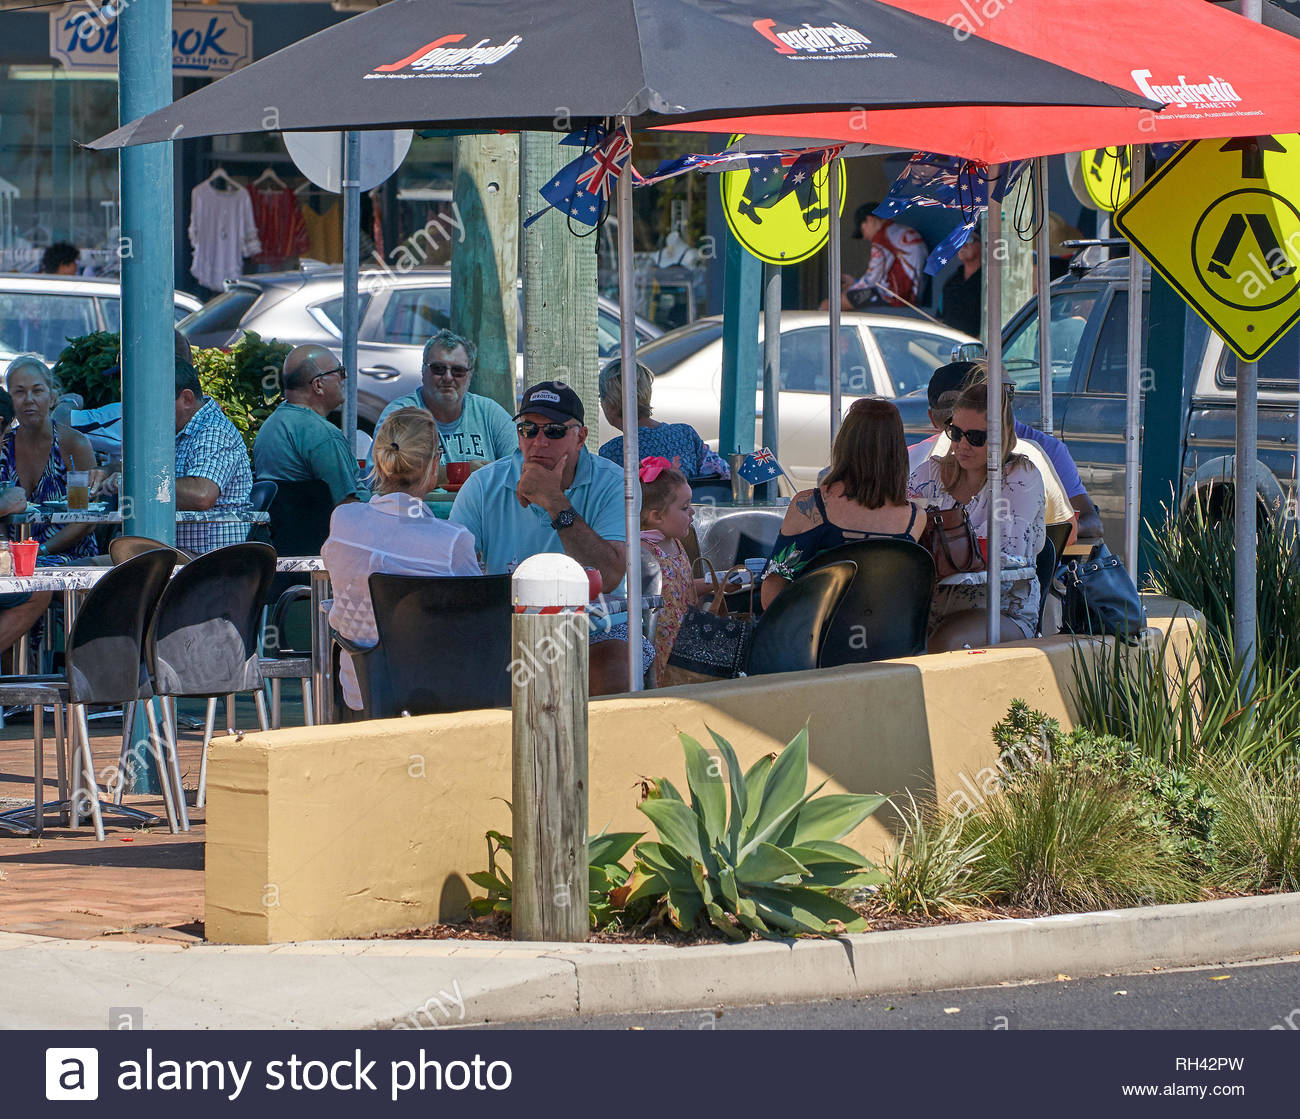 White Australians sitting at tables under umbrellas, at a popular coffee shop - cafe - on Australia Day / Invasion Day in Yamba, NSW, Australia. - Stock Image